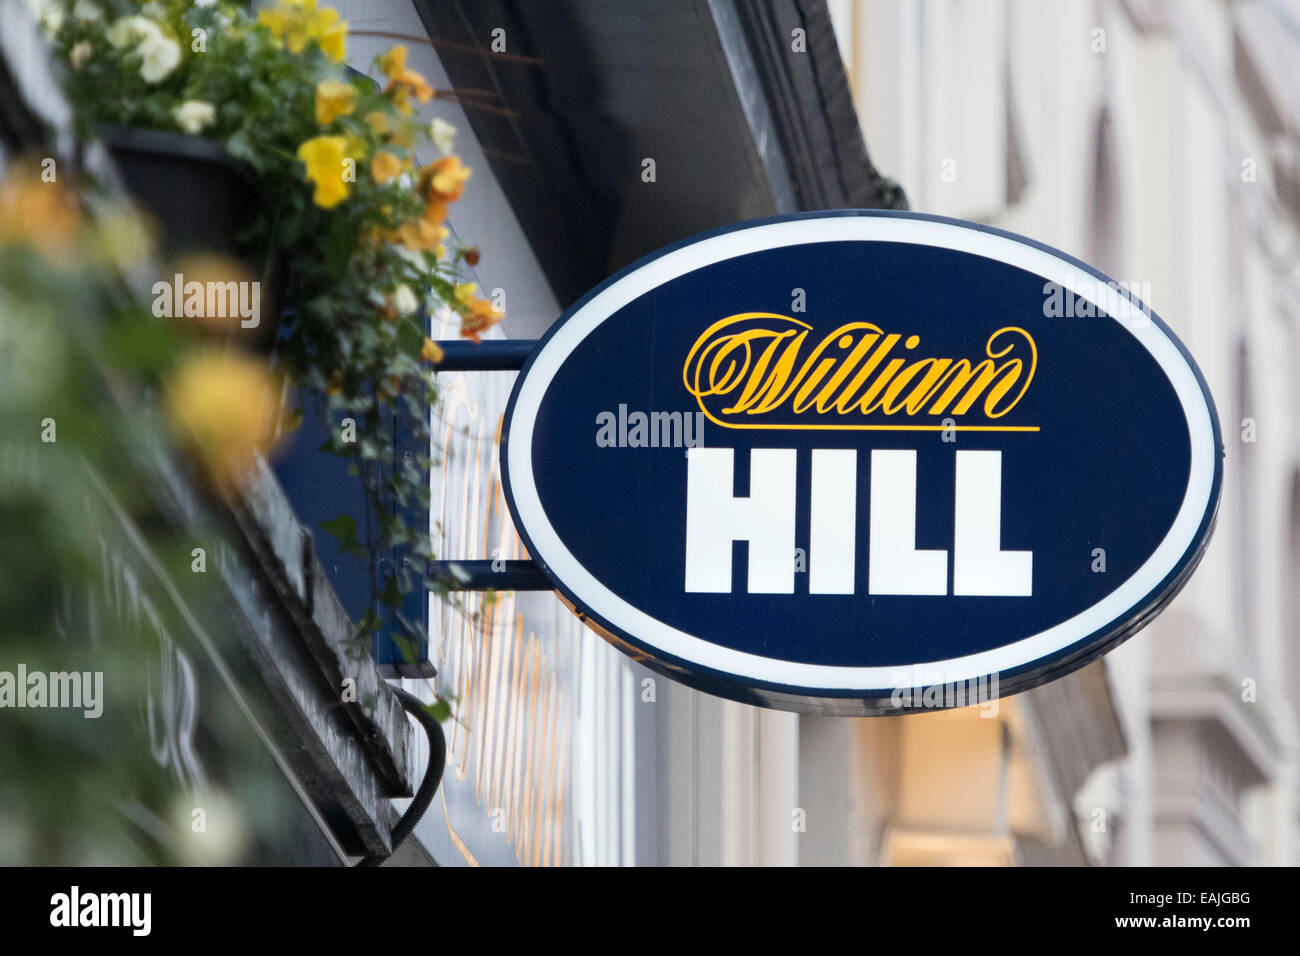 William Hill bookies on the high street. - Stock Image